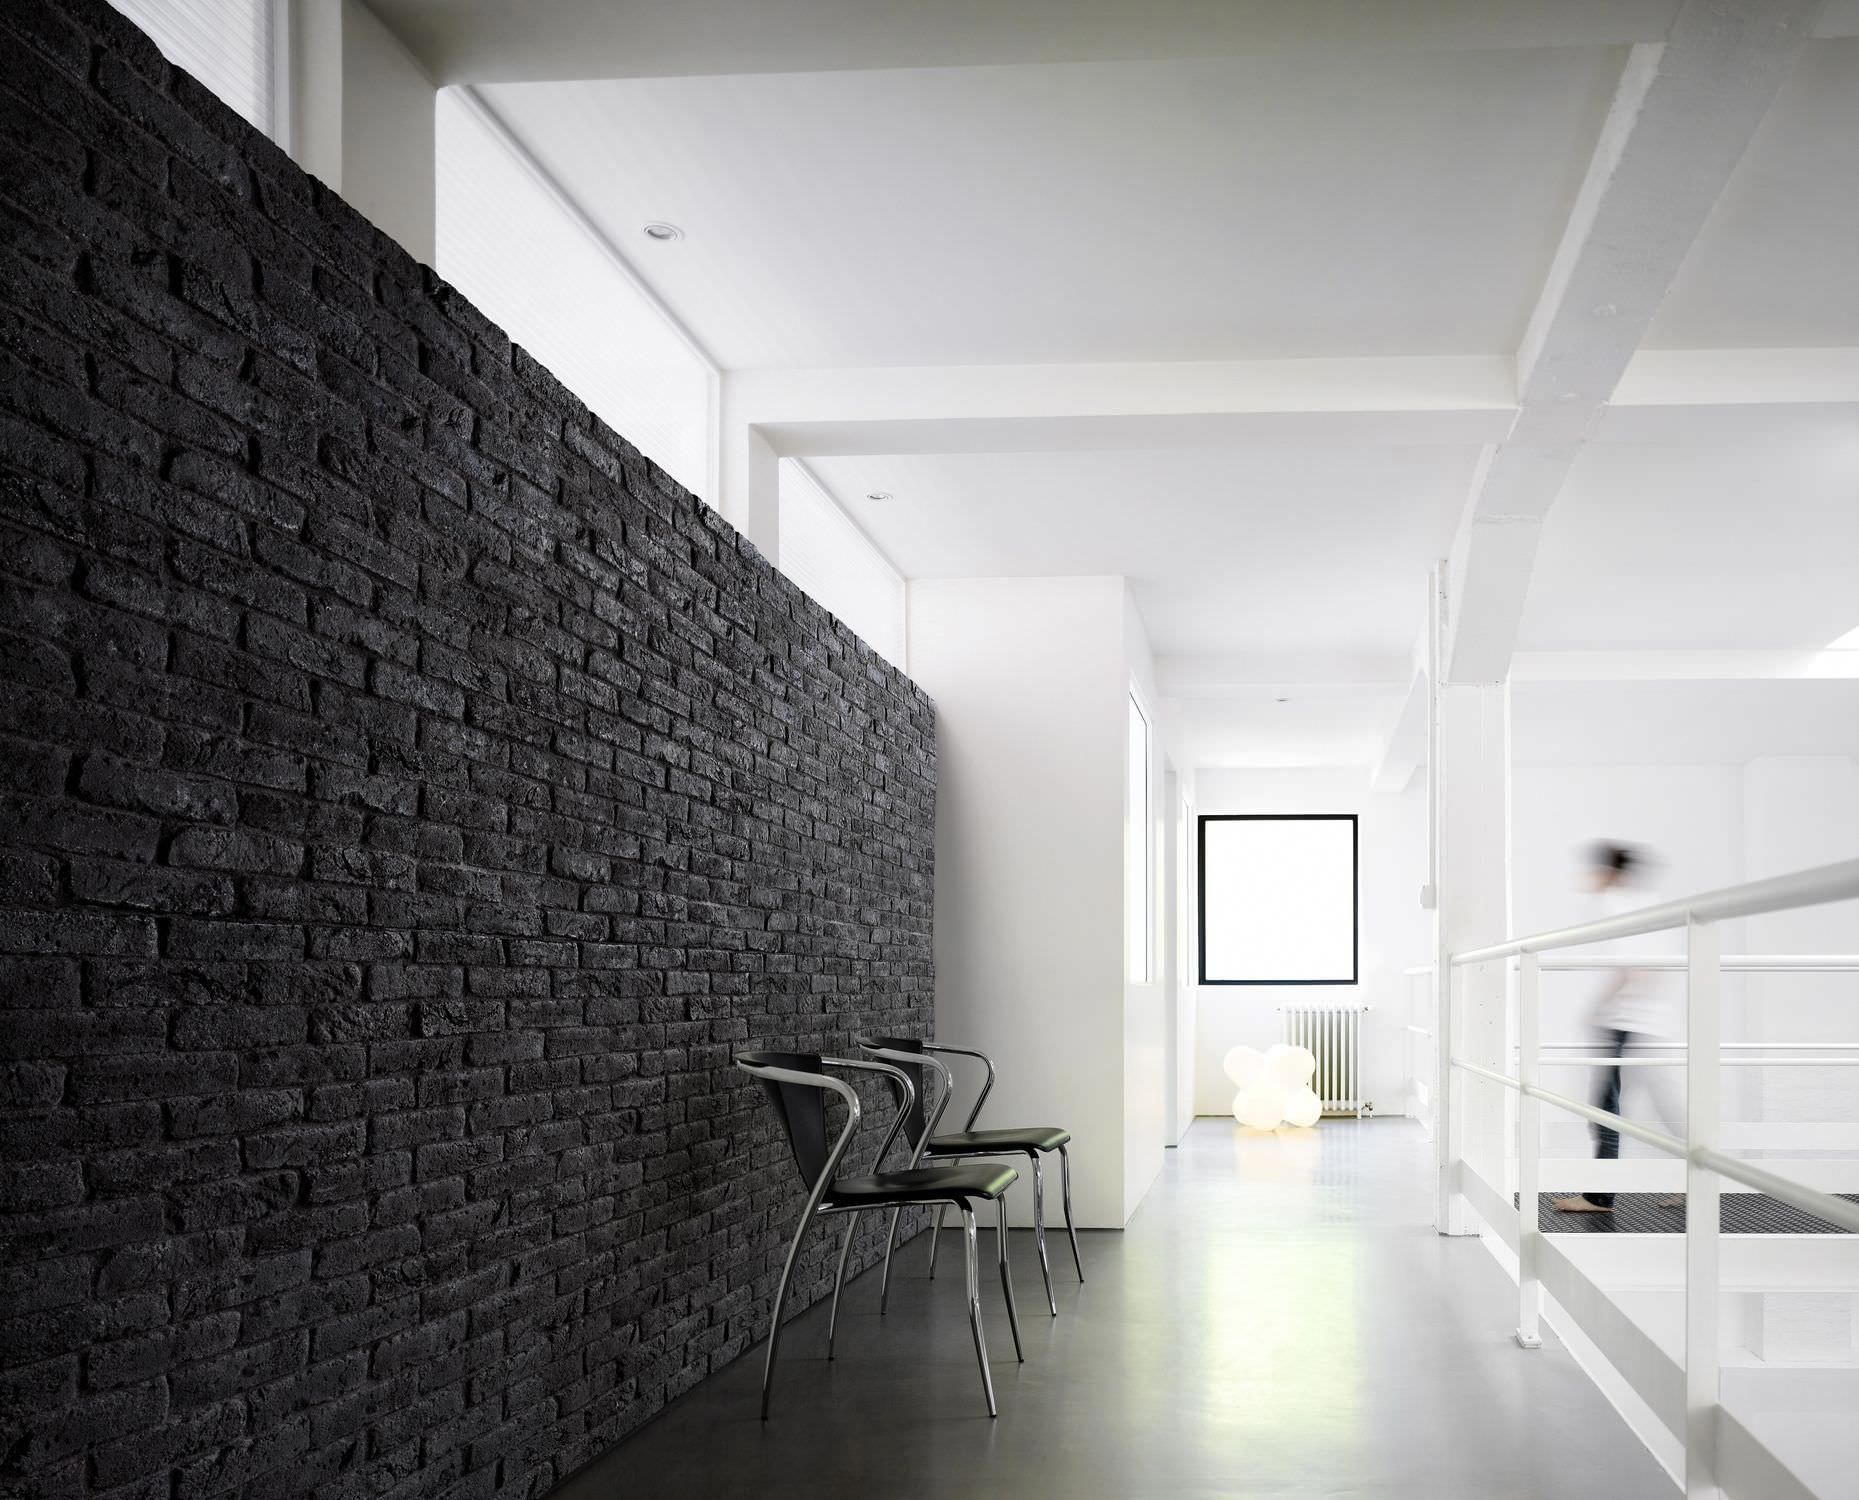 Interior Design Near Me Interiorjeeprenegade Interiorofficesigns Black Brick Wall Faux Brick Wall Panels Brick Wall Paneling